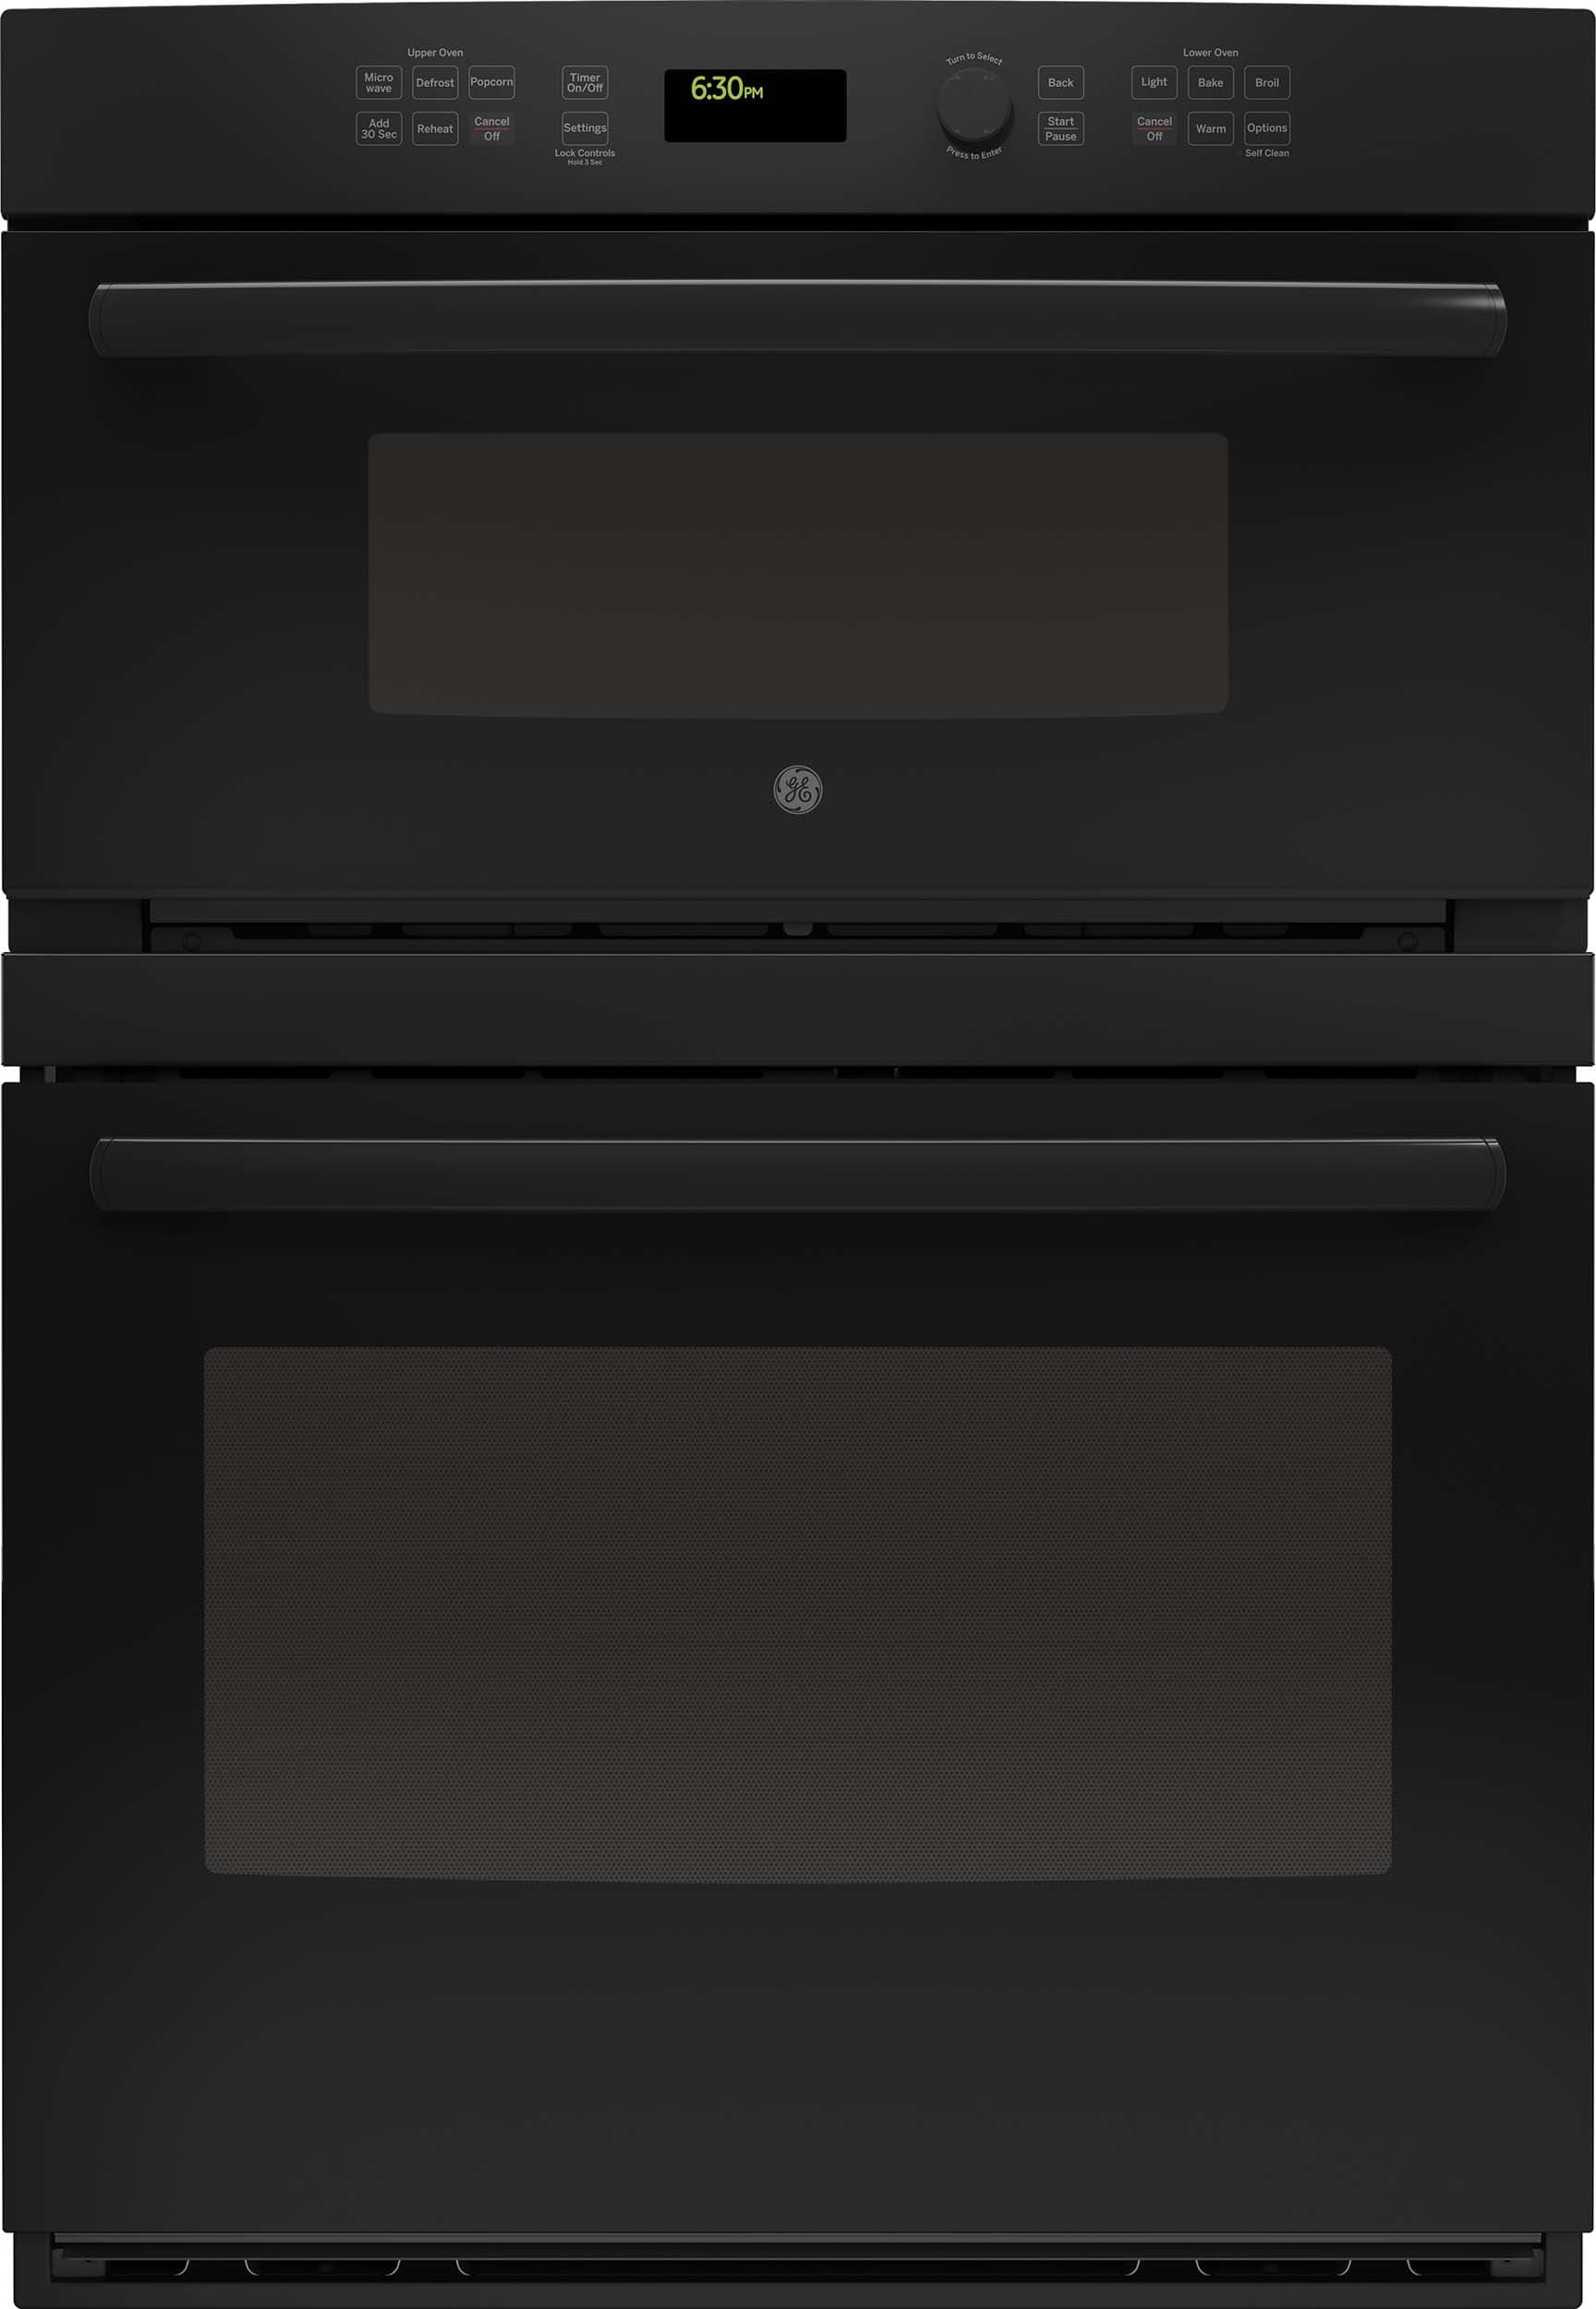 Ge Jt3800dhbb 30 Inch Combination Wall Oven With Sensor